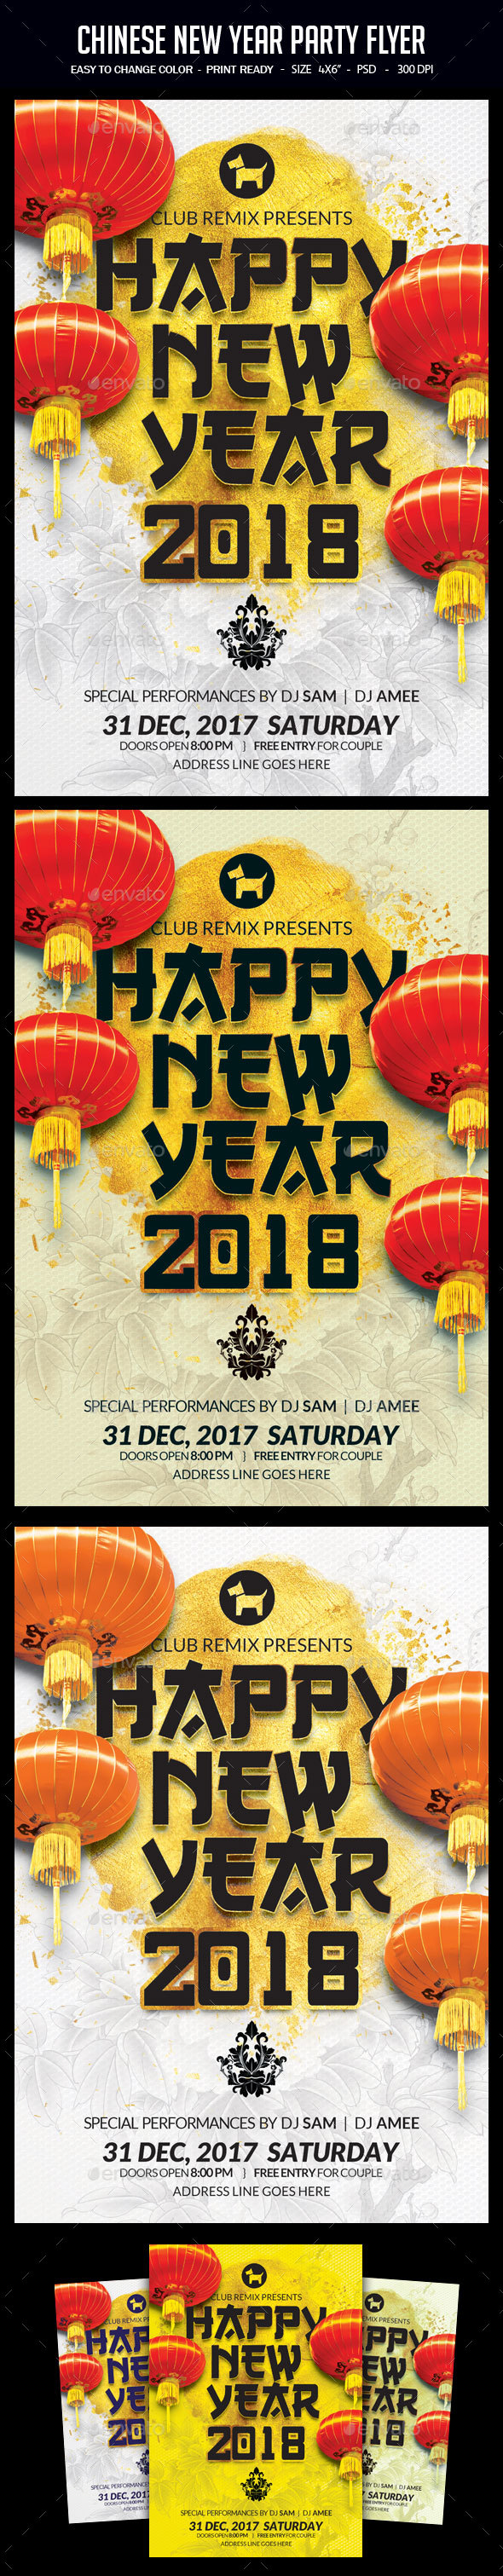 Chinese New Year Party Flyer - Clubs & Parties Events